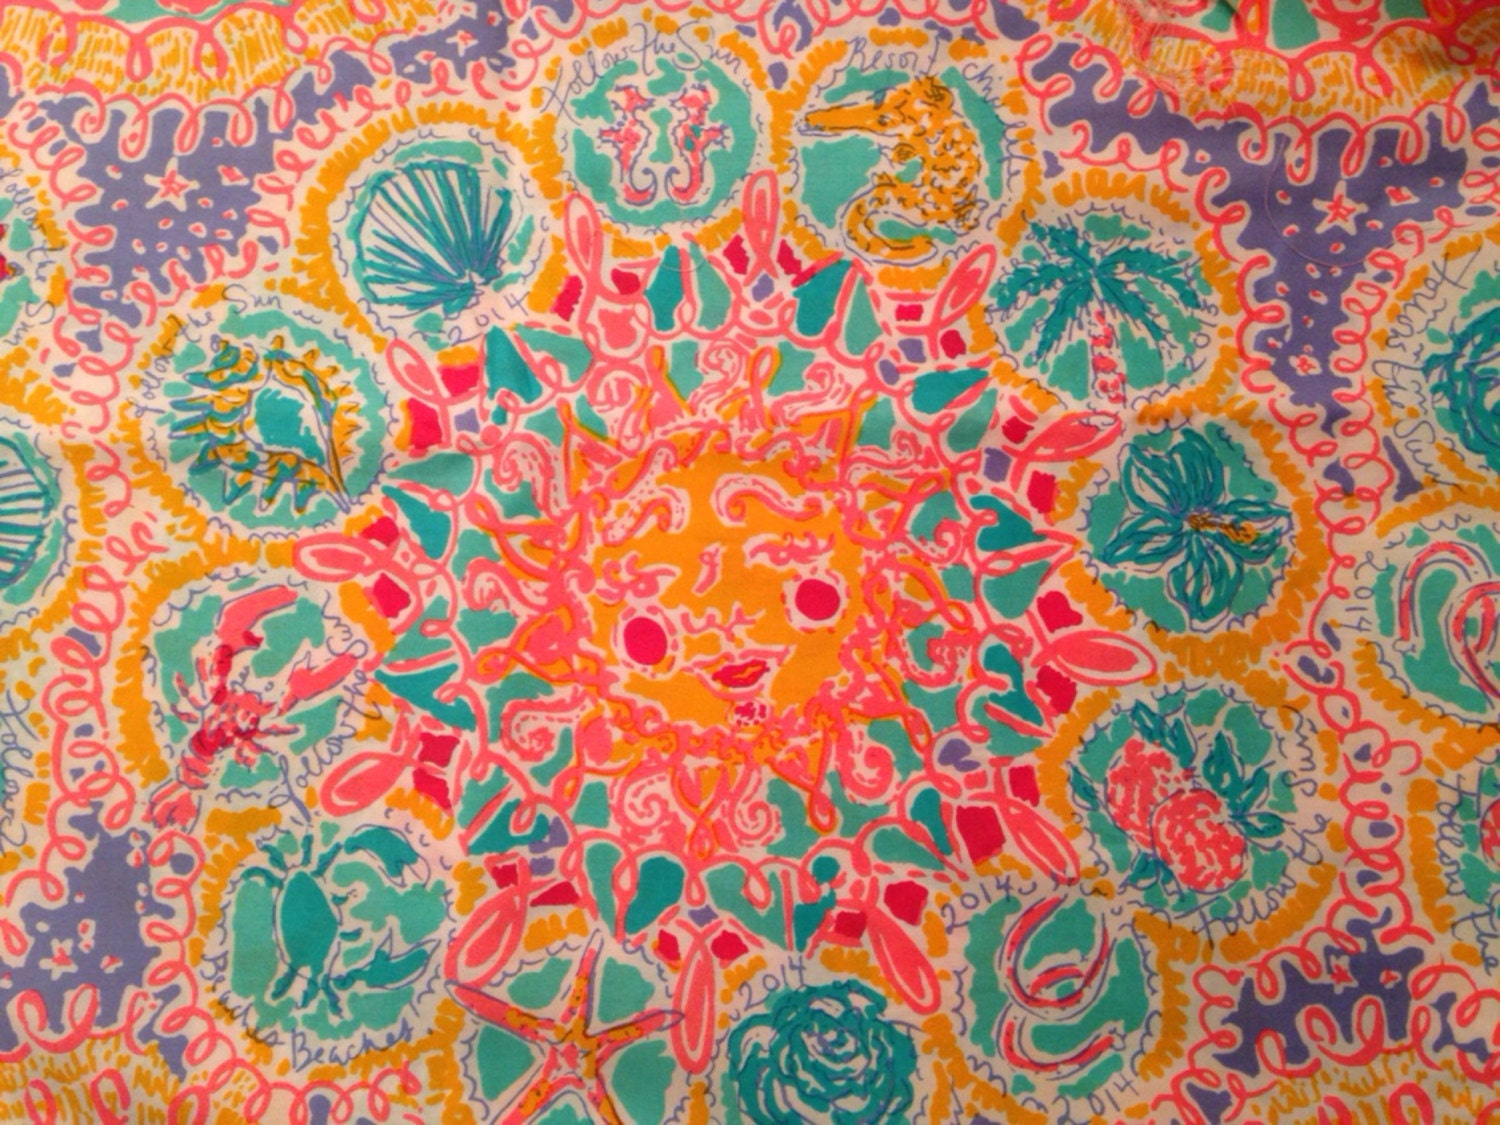 Lilly Pulitzer Fabric 3 Square Patches Of Lilly Pulitzer Fabric Written In The Sun